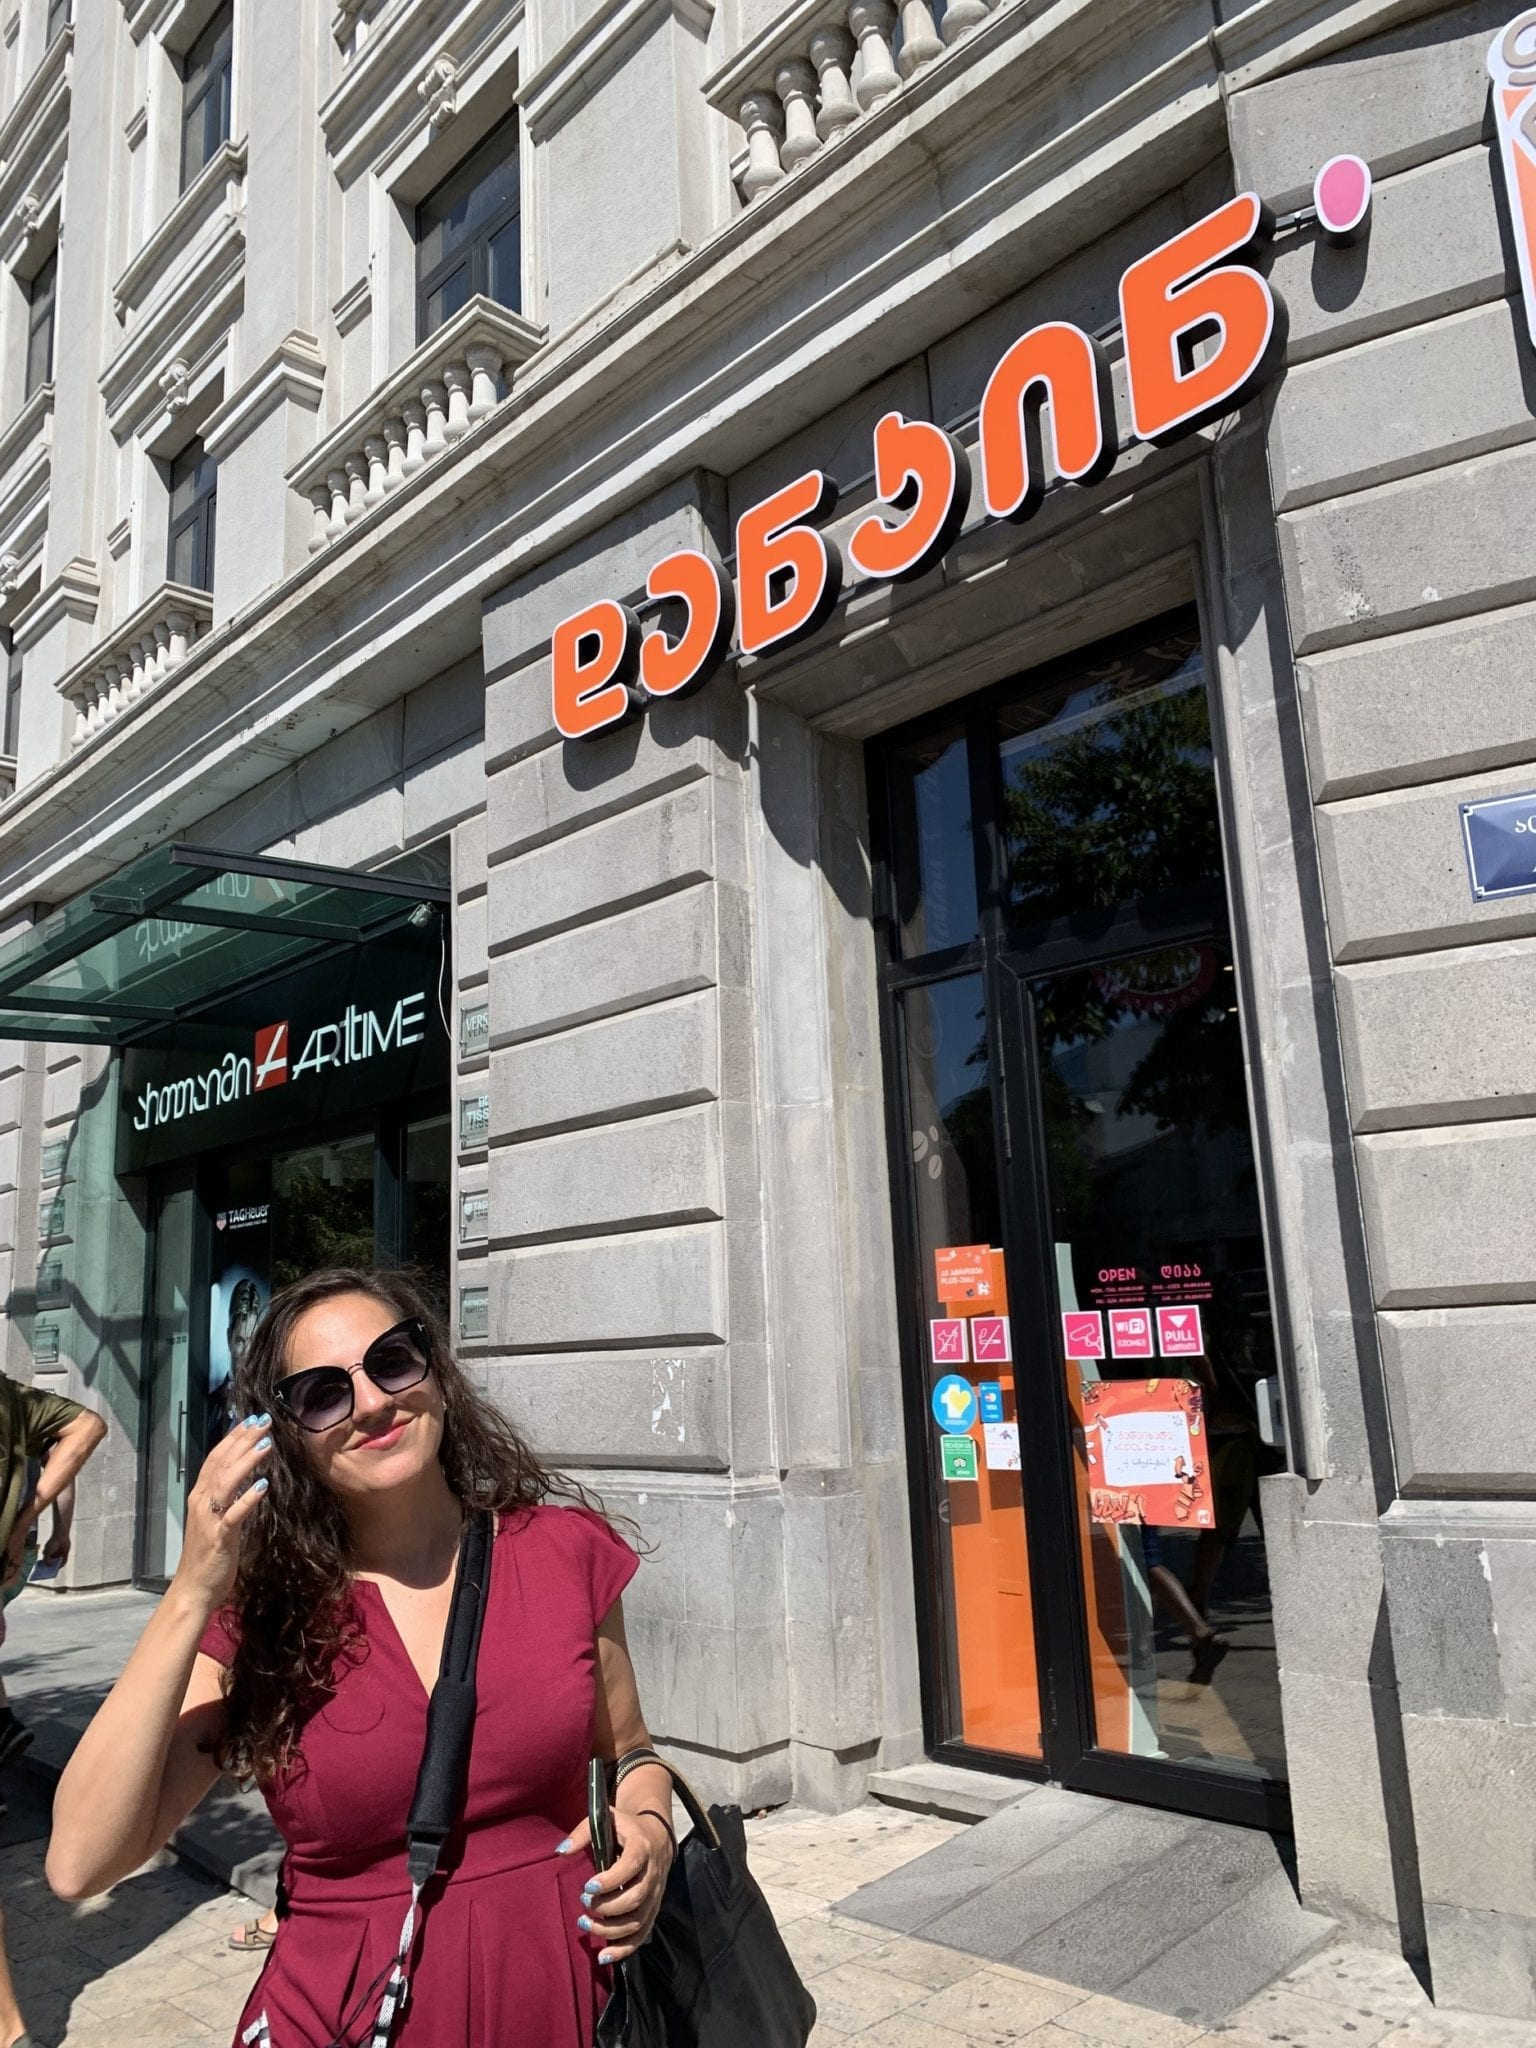 Kate smiles while standing in front of what looks like a Dunkin Donuts, with the name written in Georgian script.